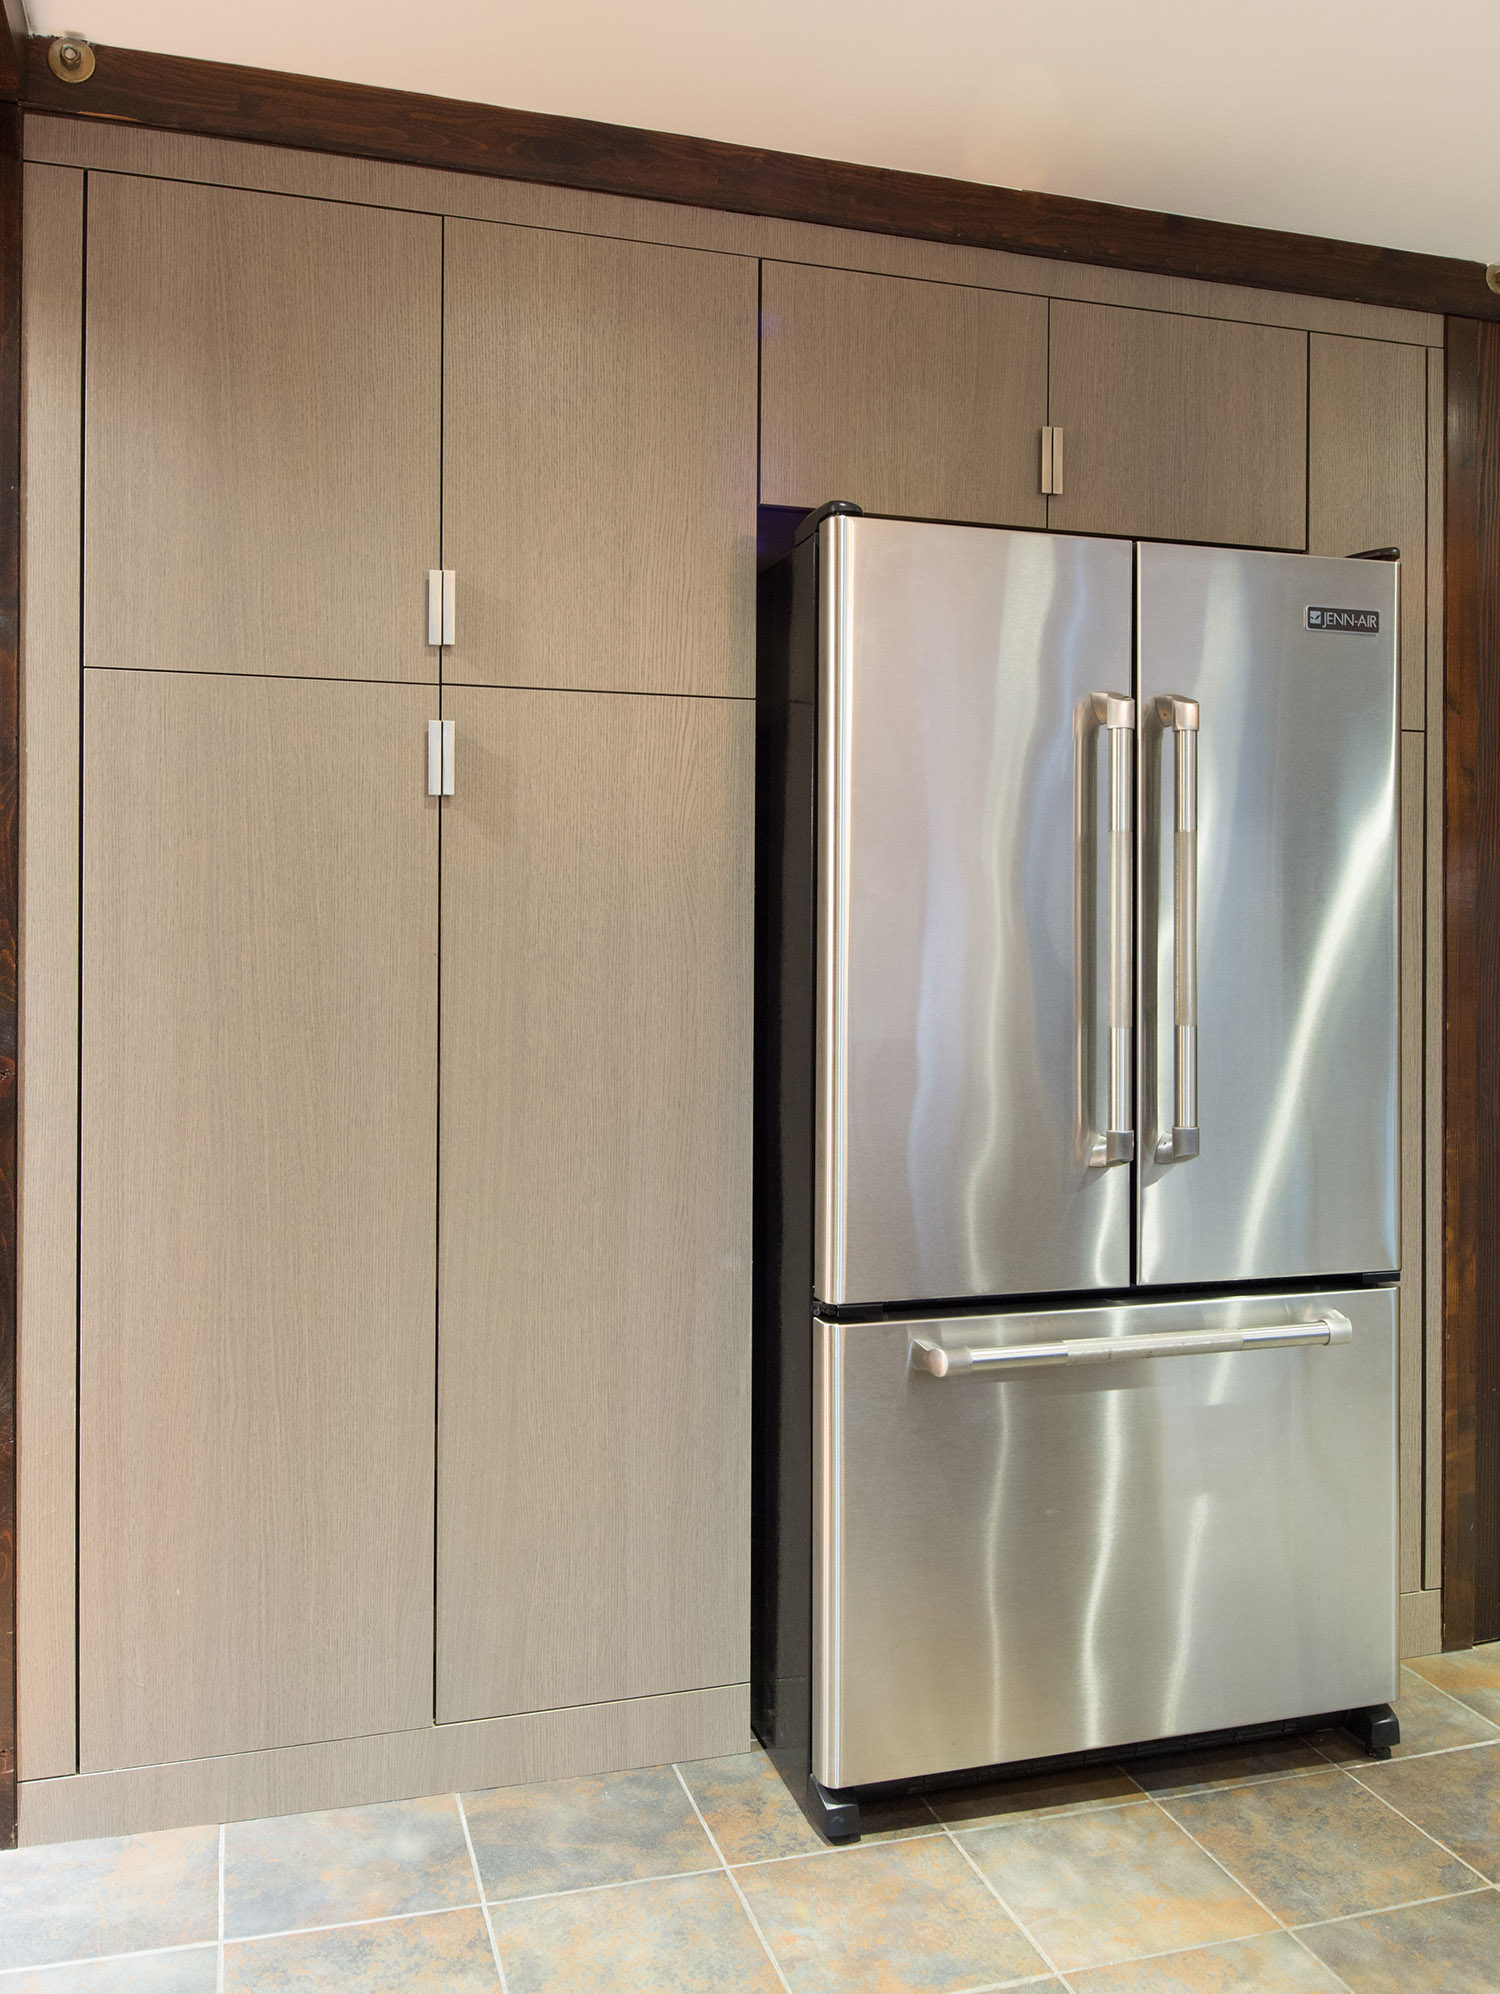 Custom kitchen cabinetry surrounding a refrigerator in grey oak Shinoki